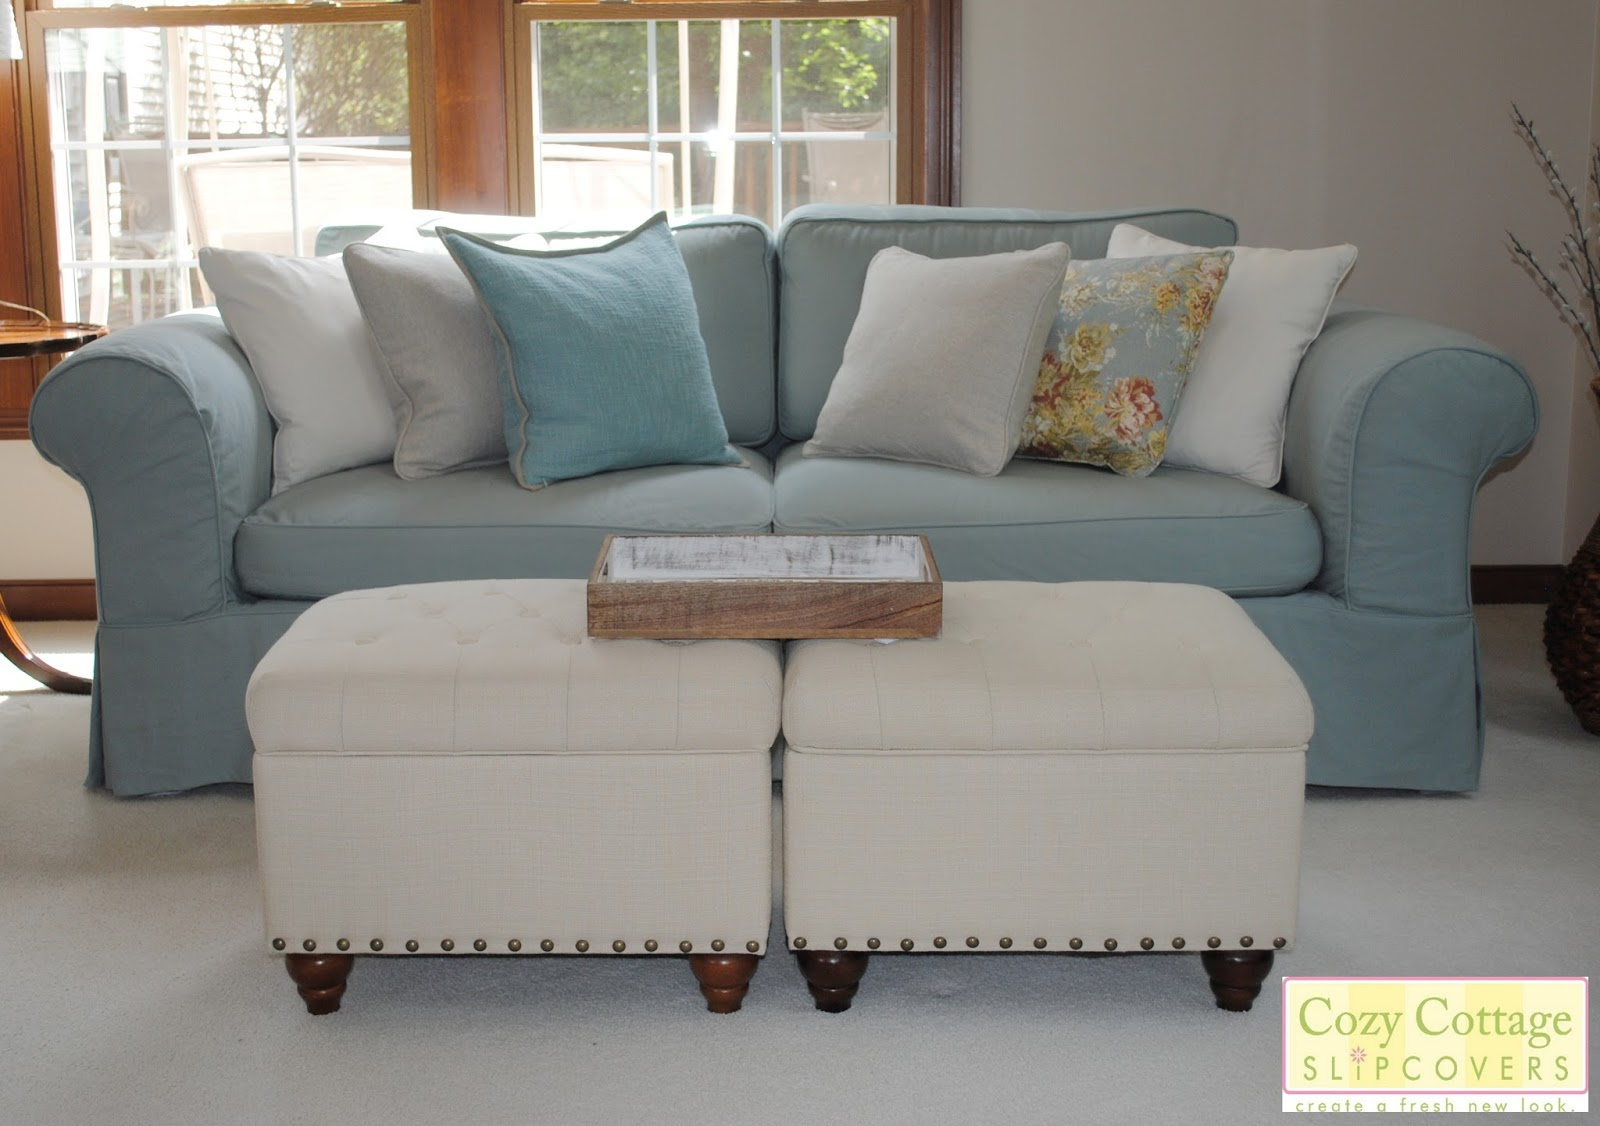 cozy cottage slipcovers fresh new look with slipcovers. Black Bedroom Furniture Sets. Home Design Ideas